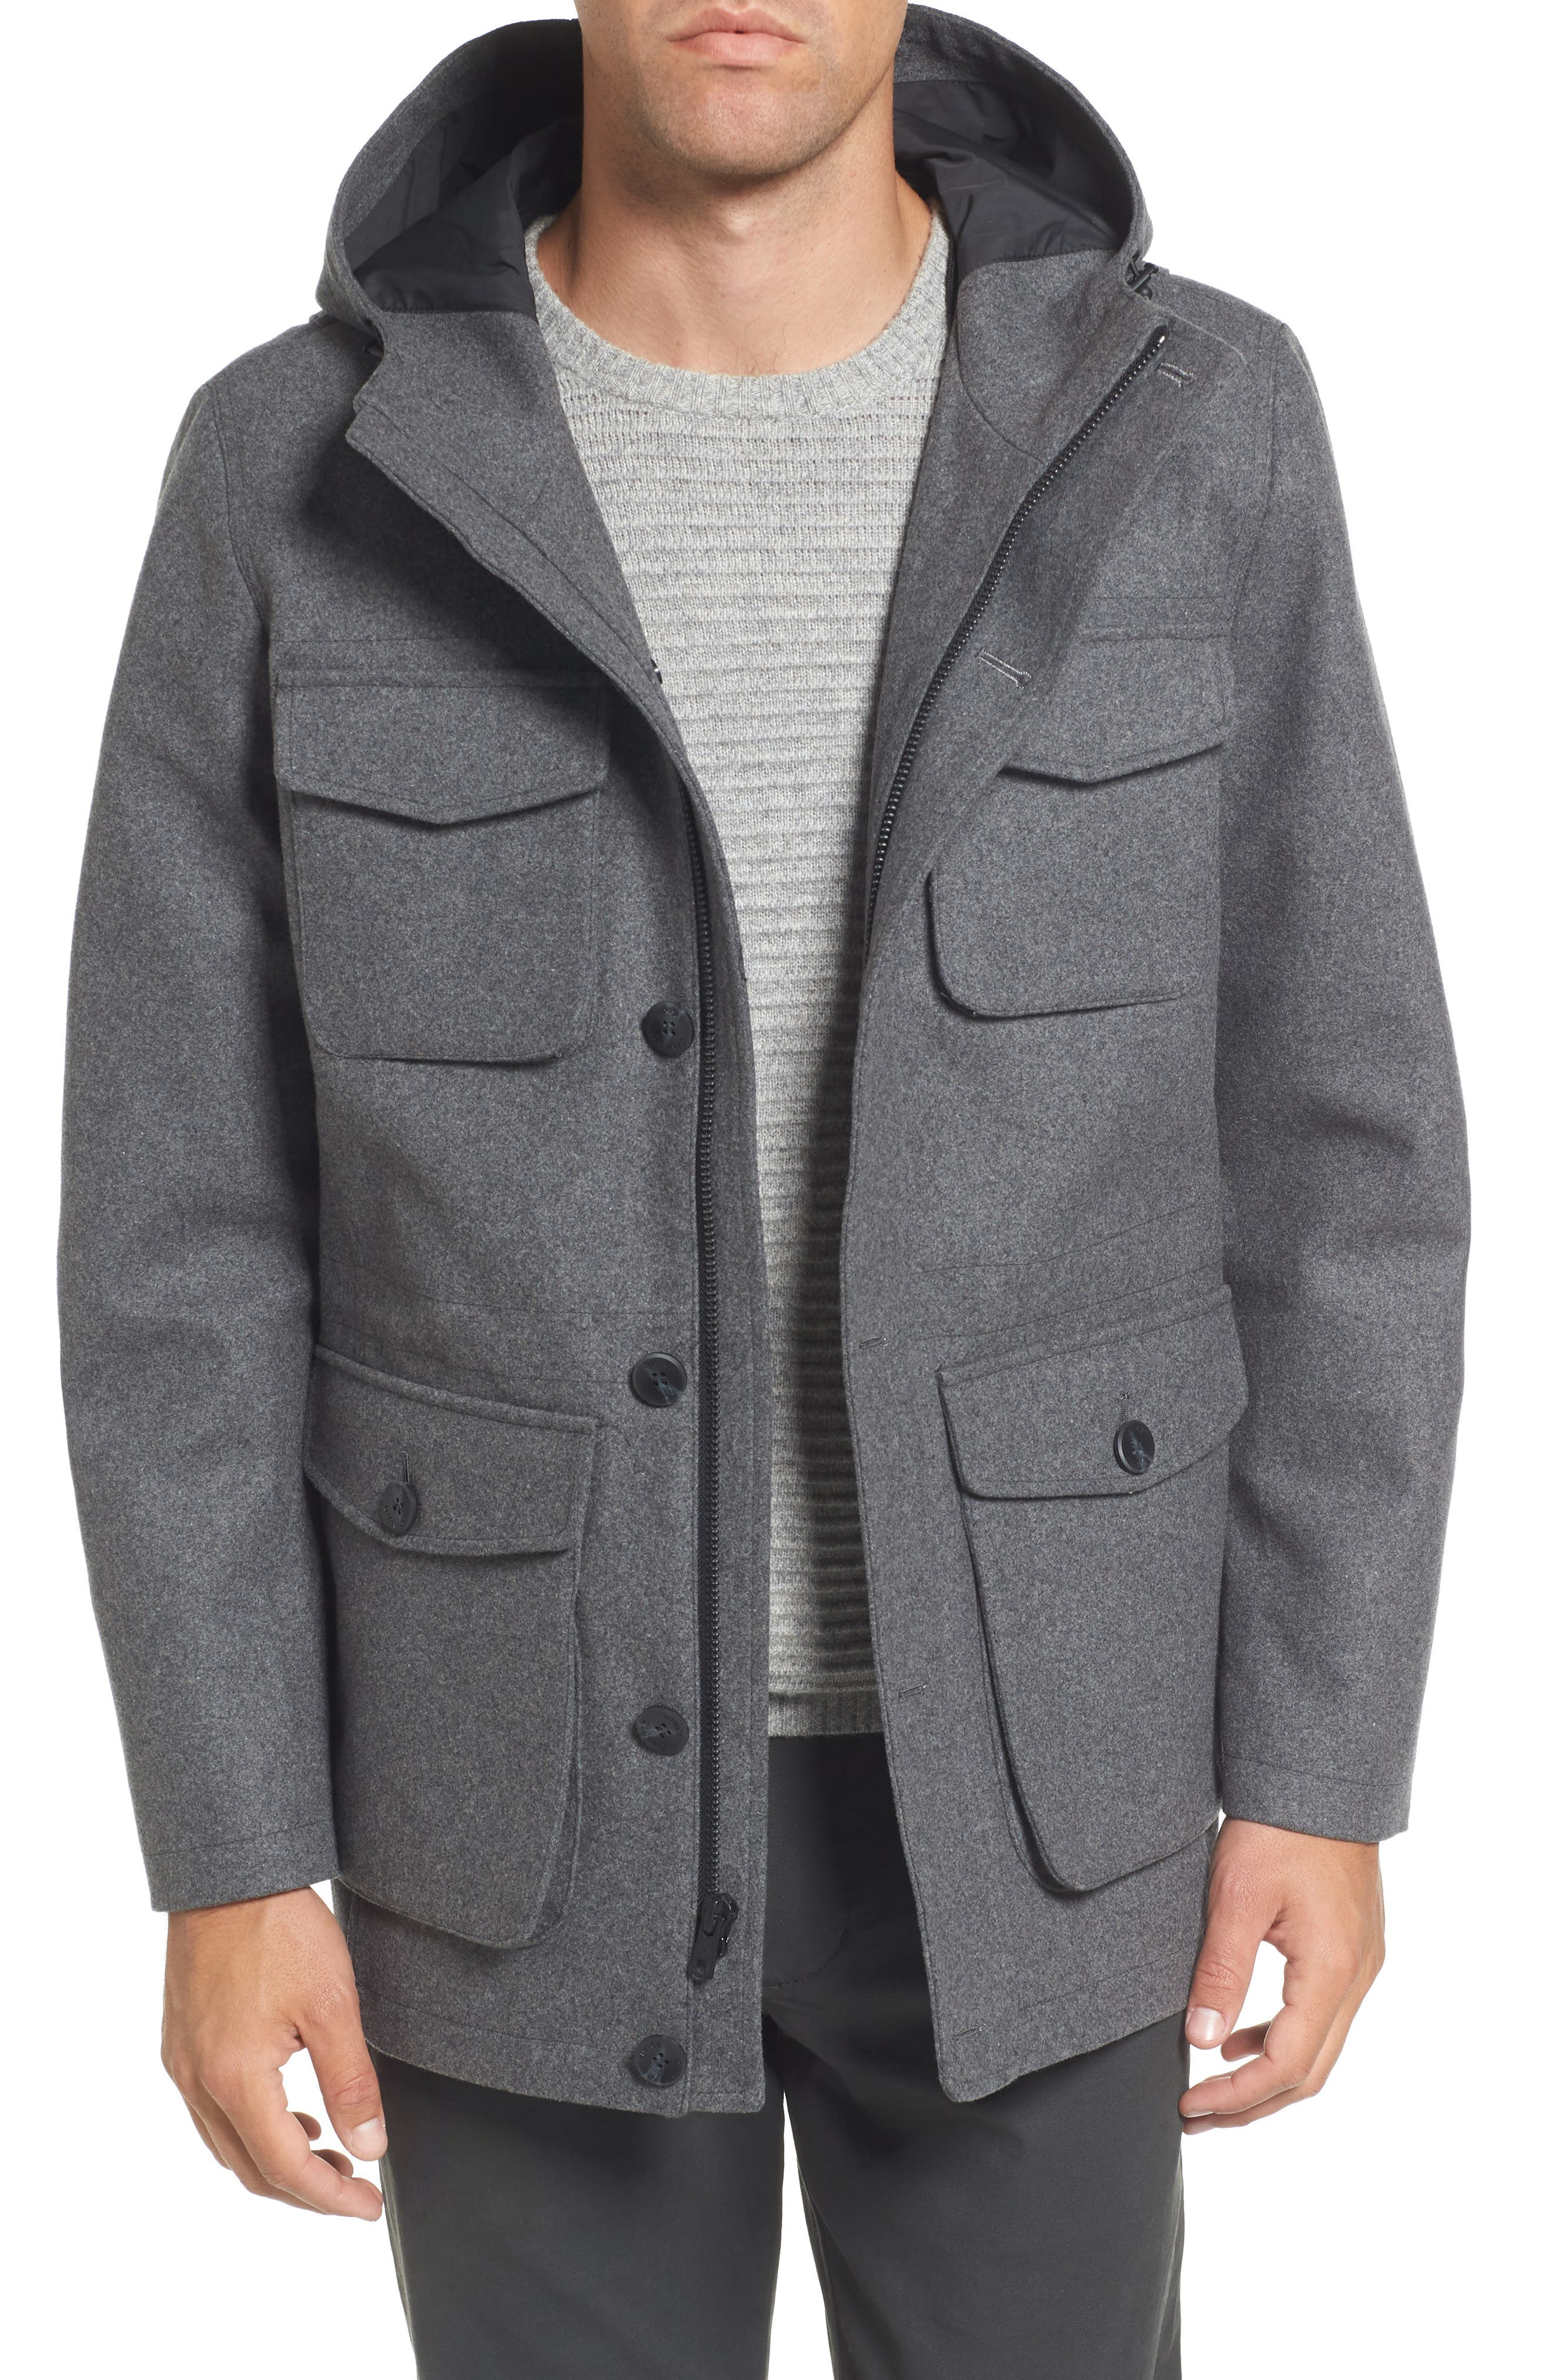 Alternate Image 1 Selected - Vince Camuto Hooded Jacket with Removable Bib